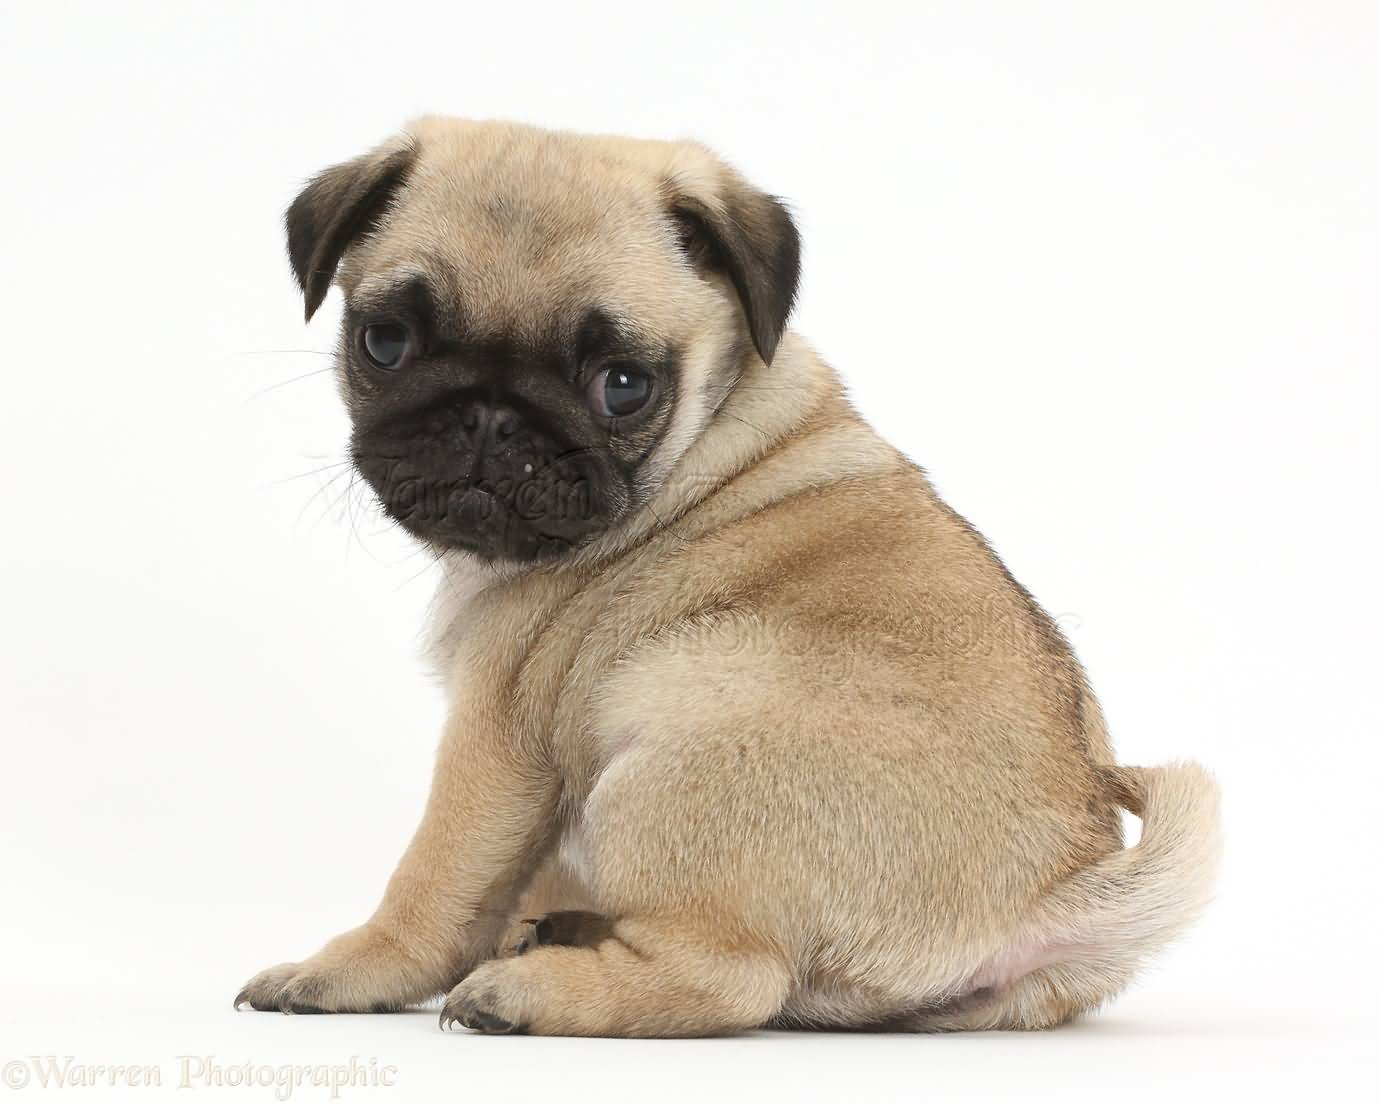 Cute Puppies Wallpapers With Quotes Superb Small Pug Dog Baby Wallpaper For Desktop Picsmine